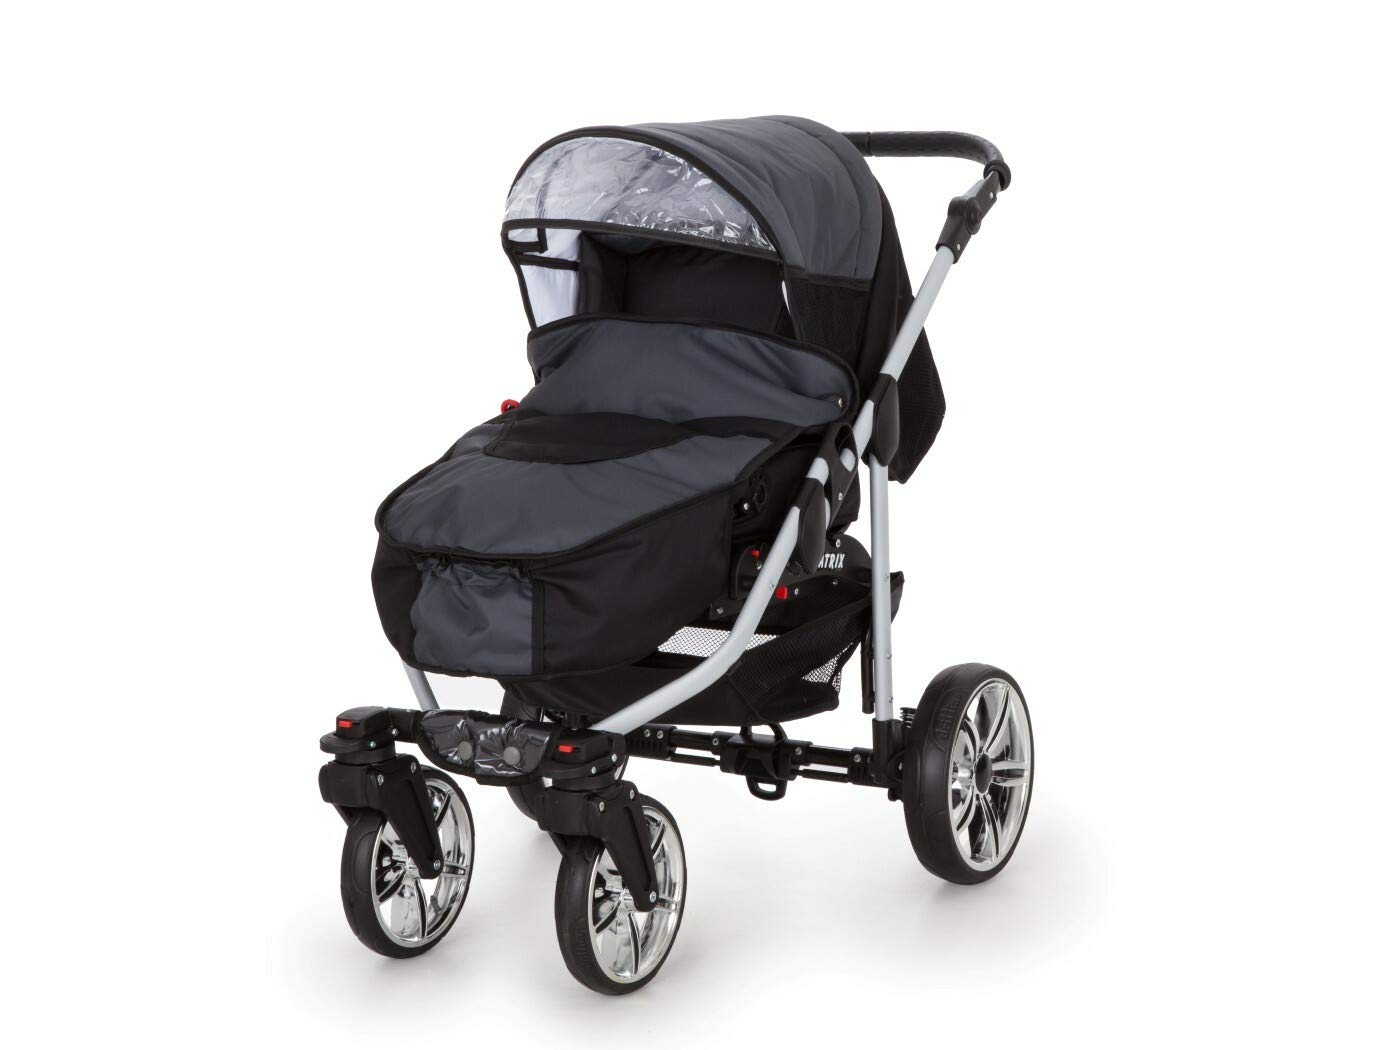 Travel System Stroller Pram Pushchair 2in1 3in1 Set Isofix X-Car by SaintBaby Black & Check 3in1 with Baby seat SaintBaby 3in1 or 2in1 Selectable. At 3in1 you will also receive the car seat (baby seat). Of course you get the baby tub (classic pram) as well as the buggy attachment (sports seat) no matter if 2in1 or 3in1. The car naturally complies with the EU safety standard EN1888. During production and before shipment, each wagon is carefully inspected so that you can be sure you have one of the best wagons. Saintbaby stands for all-in-one carefree packages, so you will also receive a diaper bag in the same colour as the car as well as rain and insect protection free of charge. With all the colours of this pram you will find the pram of your dreams. 4